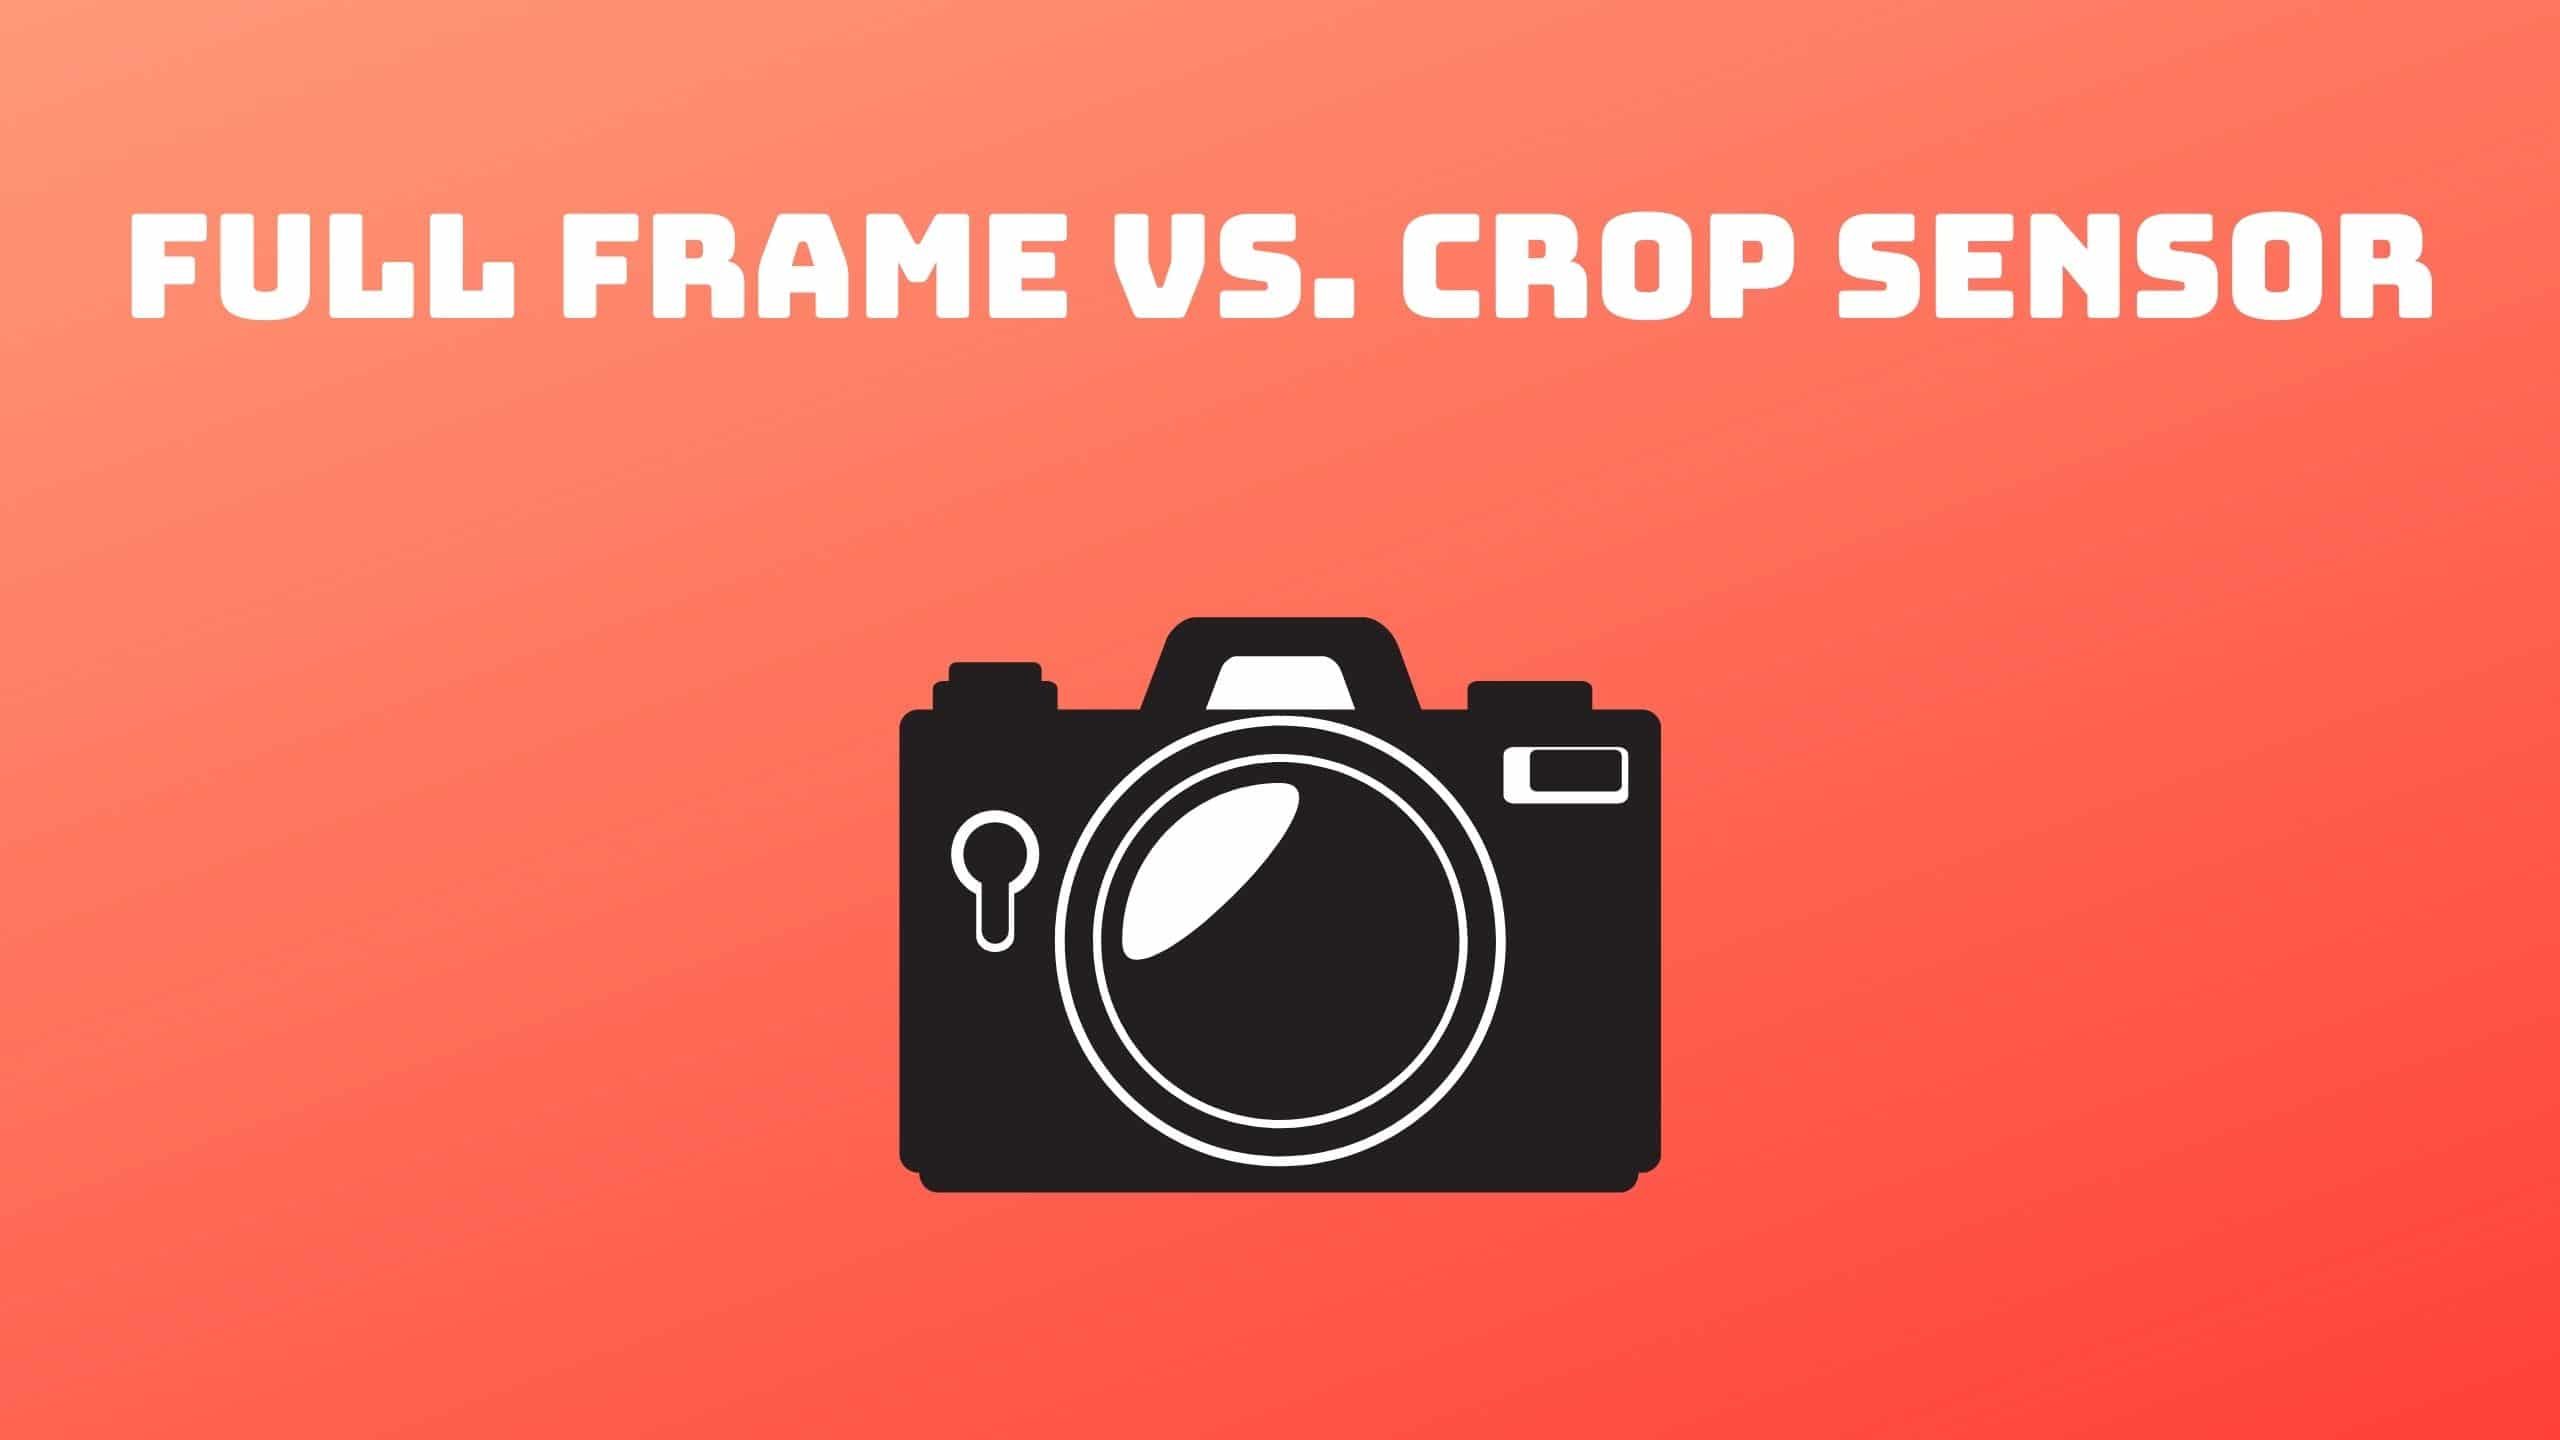 Full Frame vs. Crop Sensor